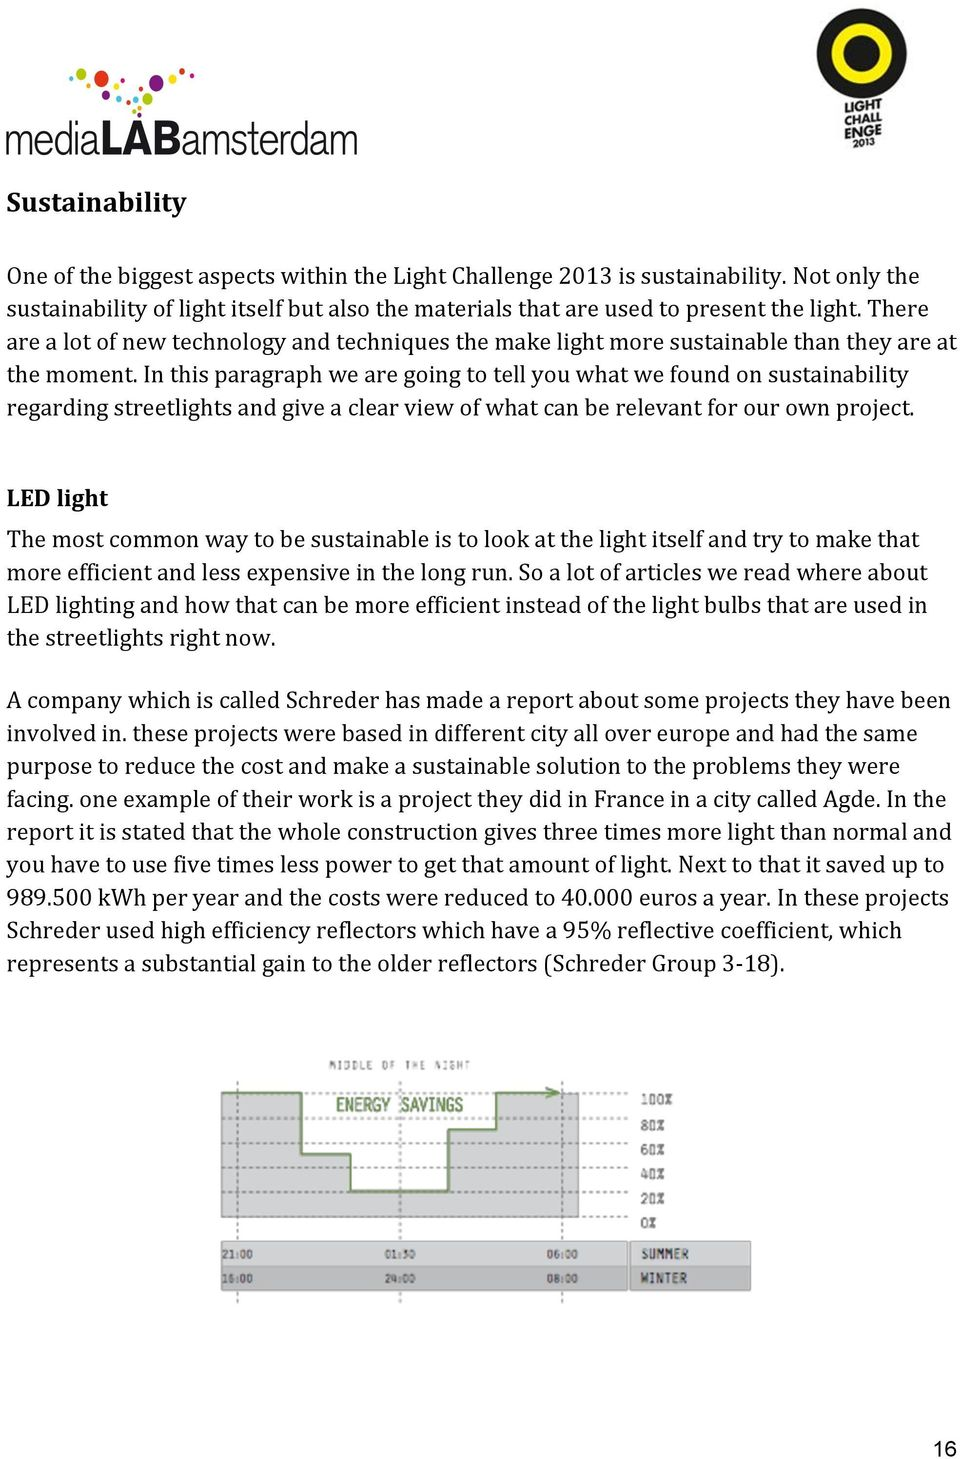 In this paragraph we are going to tell you what we found on sustainability regarding streetlights and give a clear view of what can be relevant for our own project.